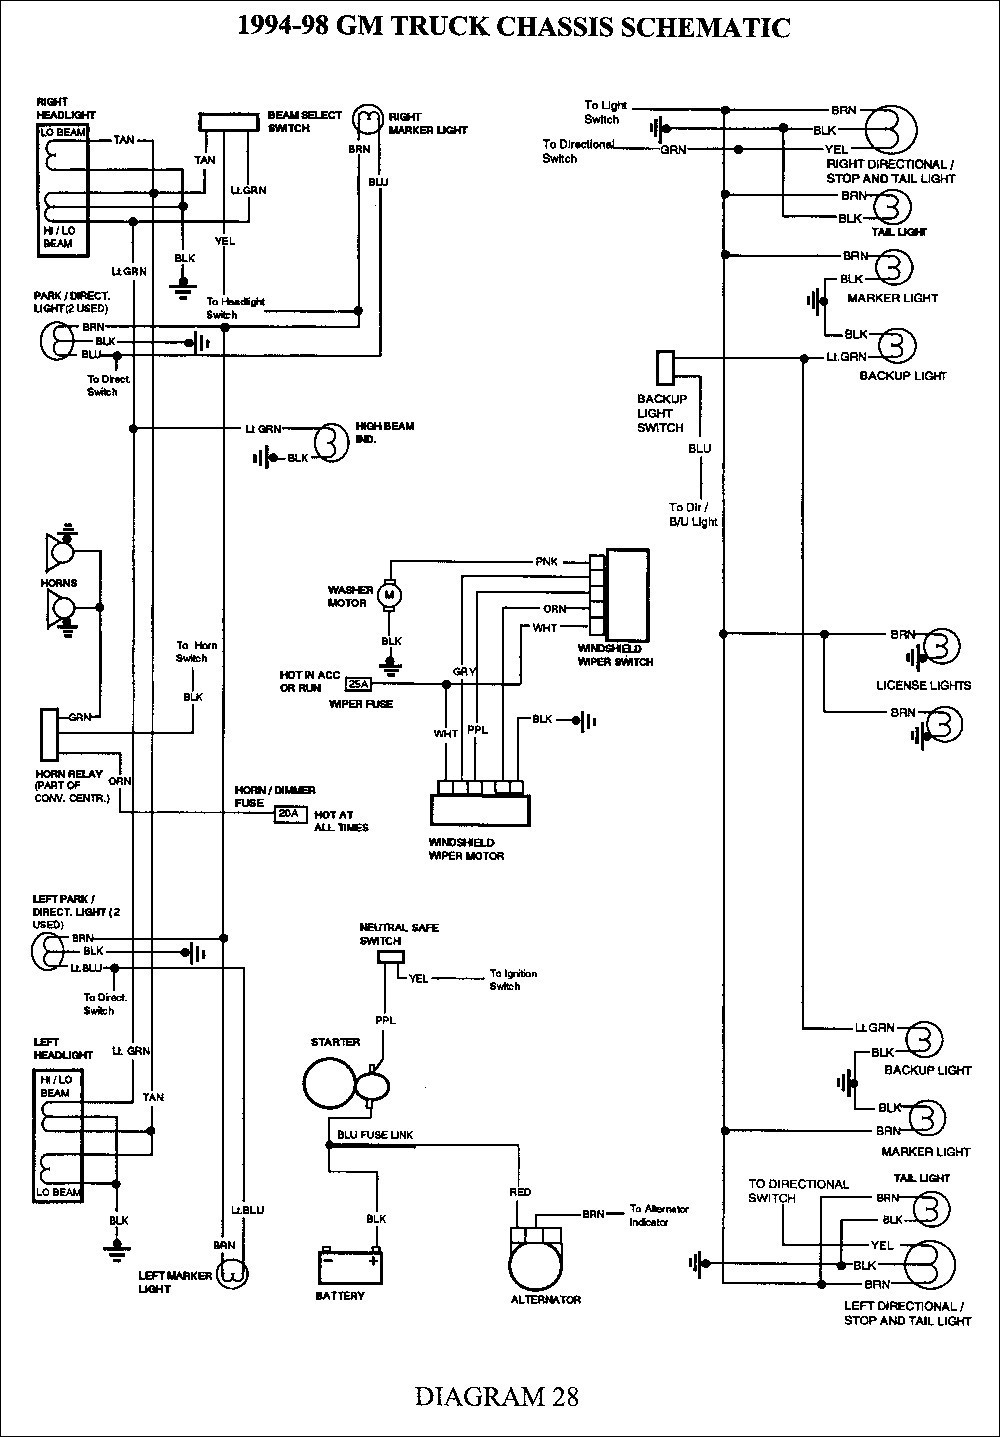 medium resolution of 2002 gmc radio wiring diagram wiring library rh 69 codingcommunity de wiring diagram for 2004 gmc